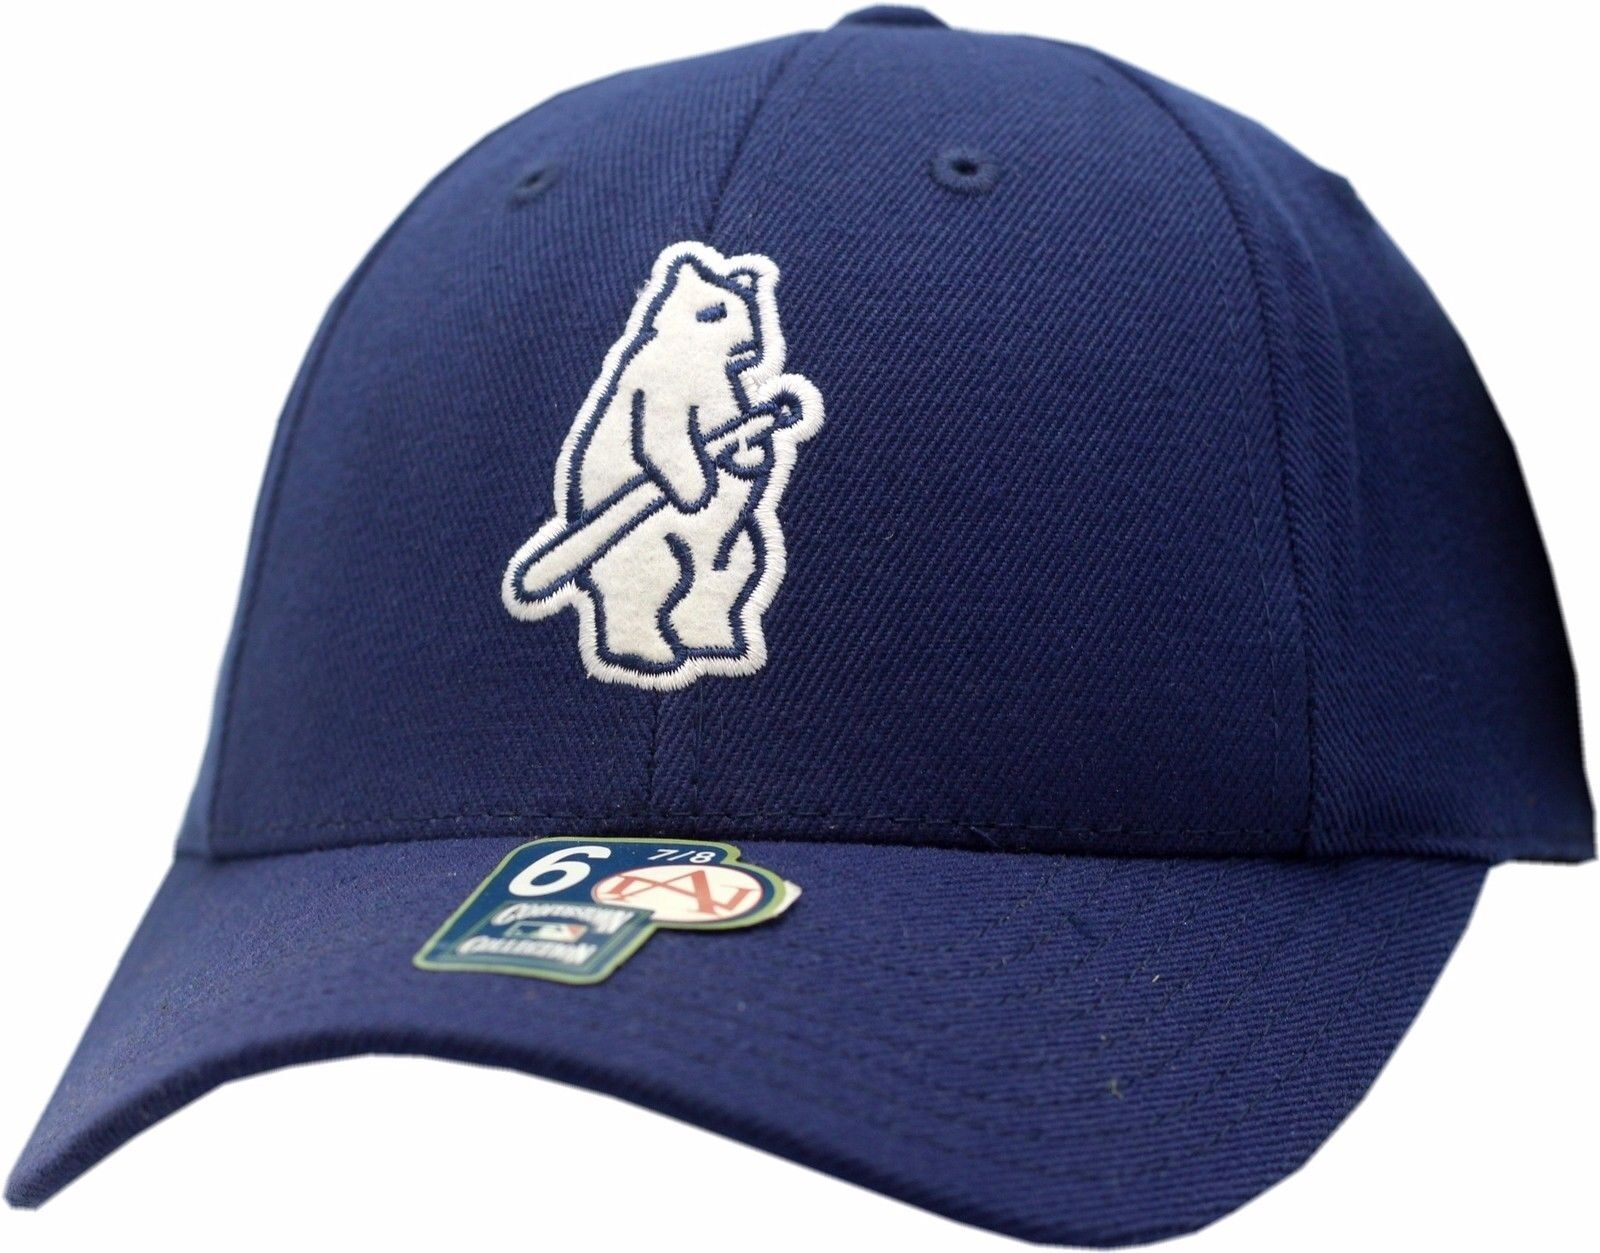 Chicago Cubs Logo Fitted Hat 1914 Bear Logo Cubs Cooperstown Collection 12128 4e4611